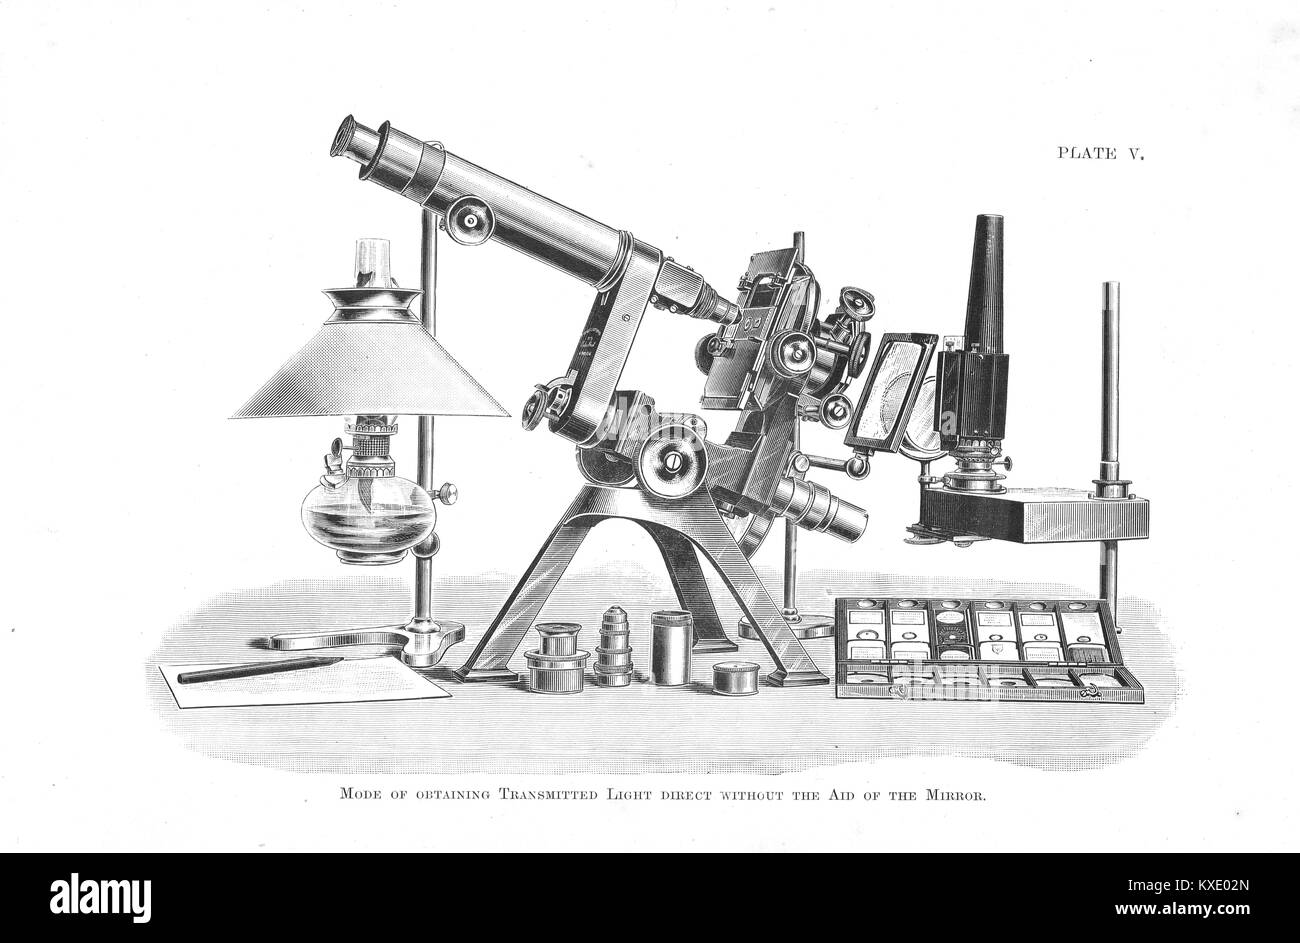 Microscope obtaining transmitted light, without the aid of a mirror - Stock Image